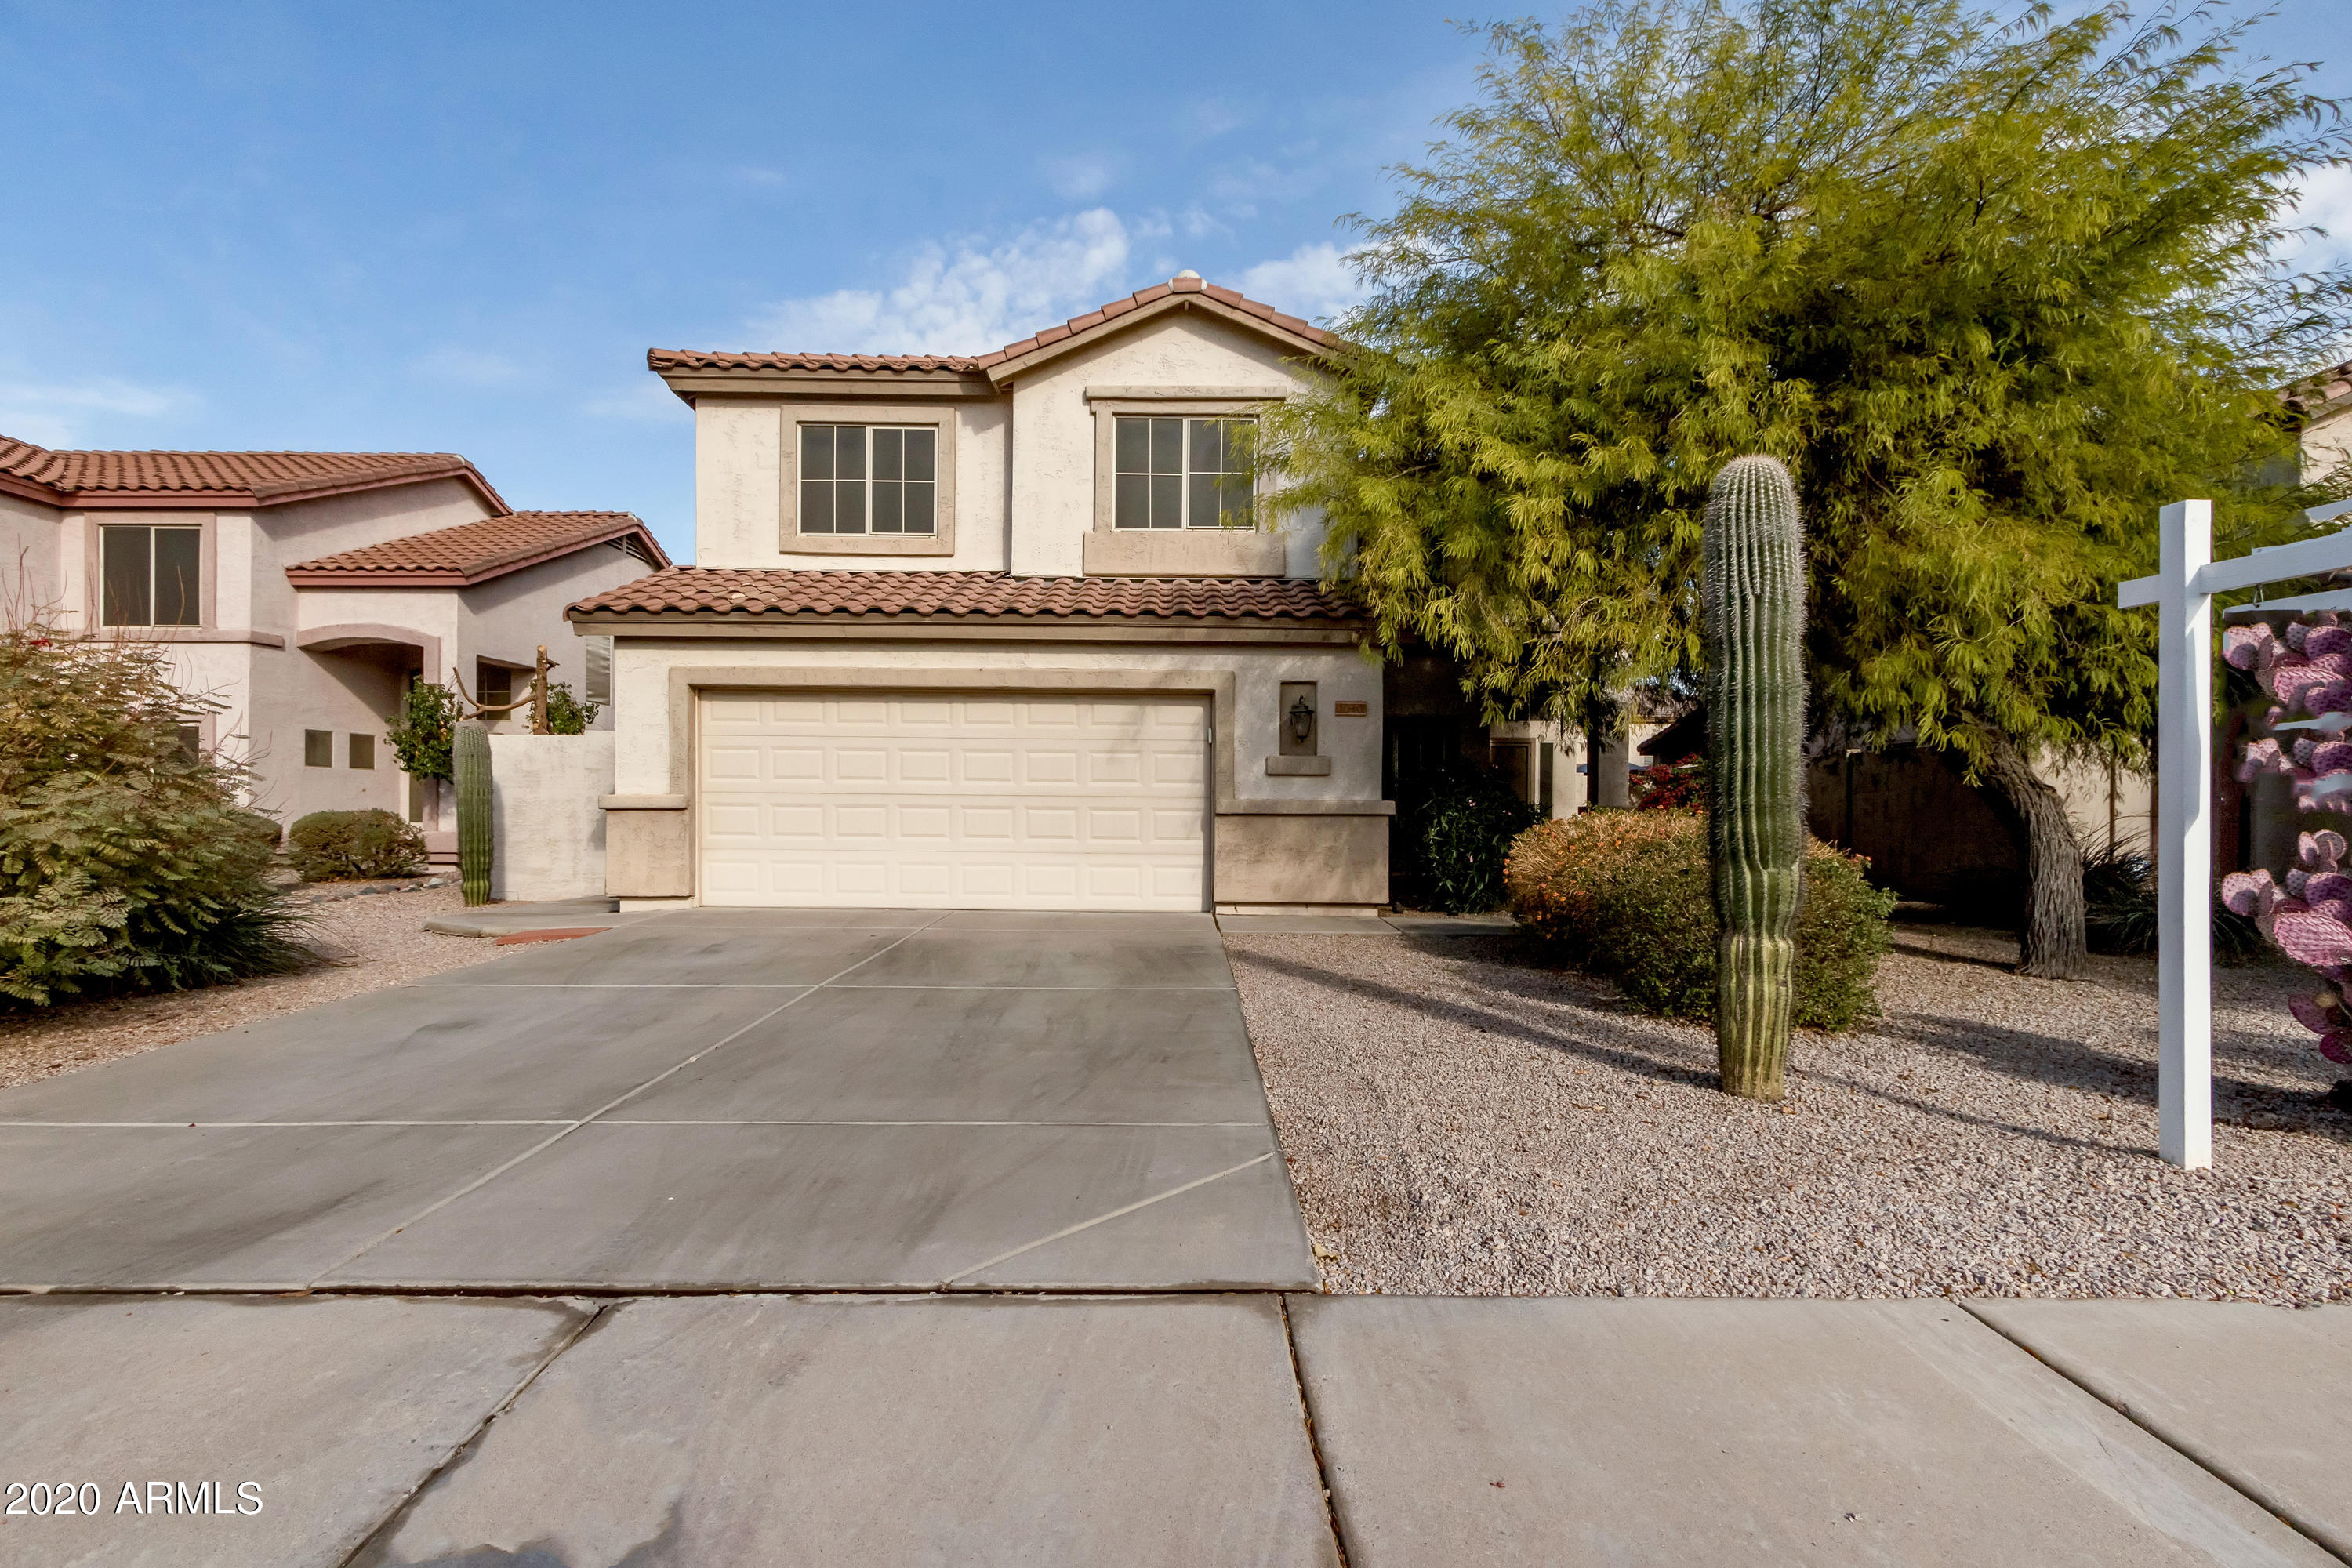 Total renovation in Gilbert - 85233!  This 4 Bedroom + Loft has 3 Full Bathrooms and a Master Suite on the 1st floor.  Everything in this home is NEW.  Spacious kitchen with an abundance of white, soft close cabinets, Quartz counters and new stainless appliances.  Bathrooms all have new cabinets, hardware, fixtures and lighting.  New LVT Flooring in living and wet areas with carpet and upgraded pad in the bedrooms.  New interior paint throughout. All lighting, fans and fixtures updated.  North facing backyard with mature landscaping boasts lemon and orange trees and even a putting green!.  Oversized 2 car garage with storage.  Ignore days on market, home has been under renovation.  Seller adding finishing touches today!